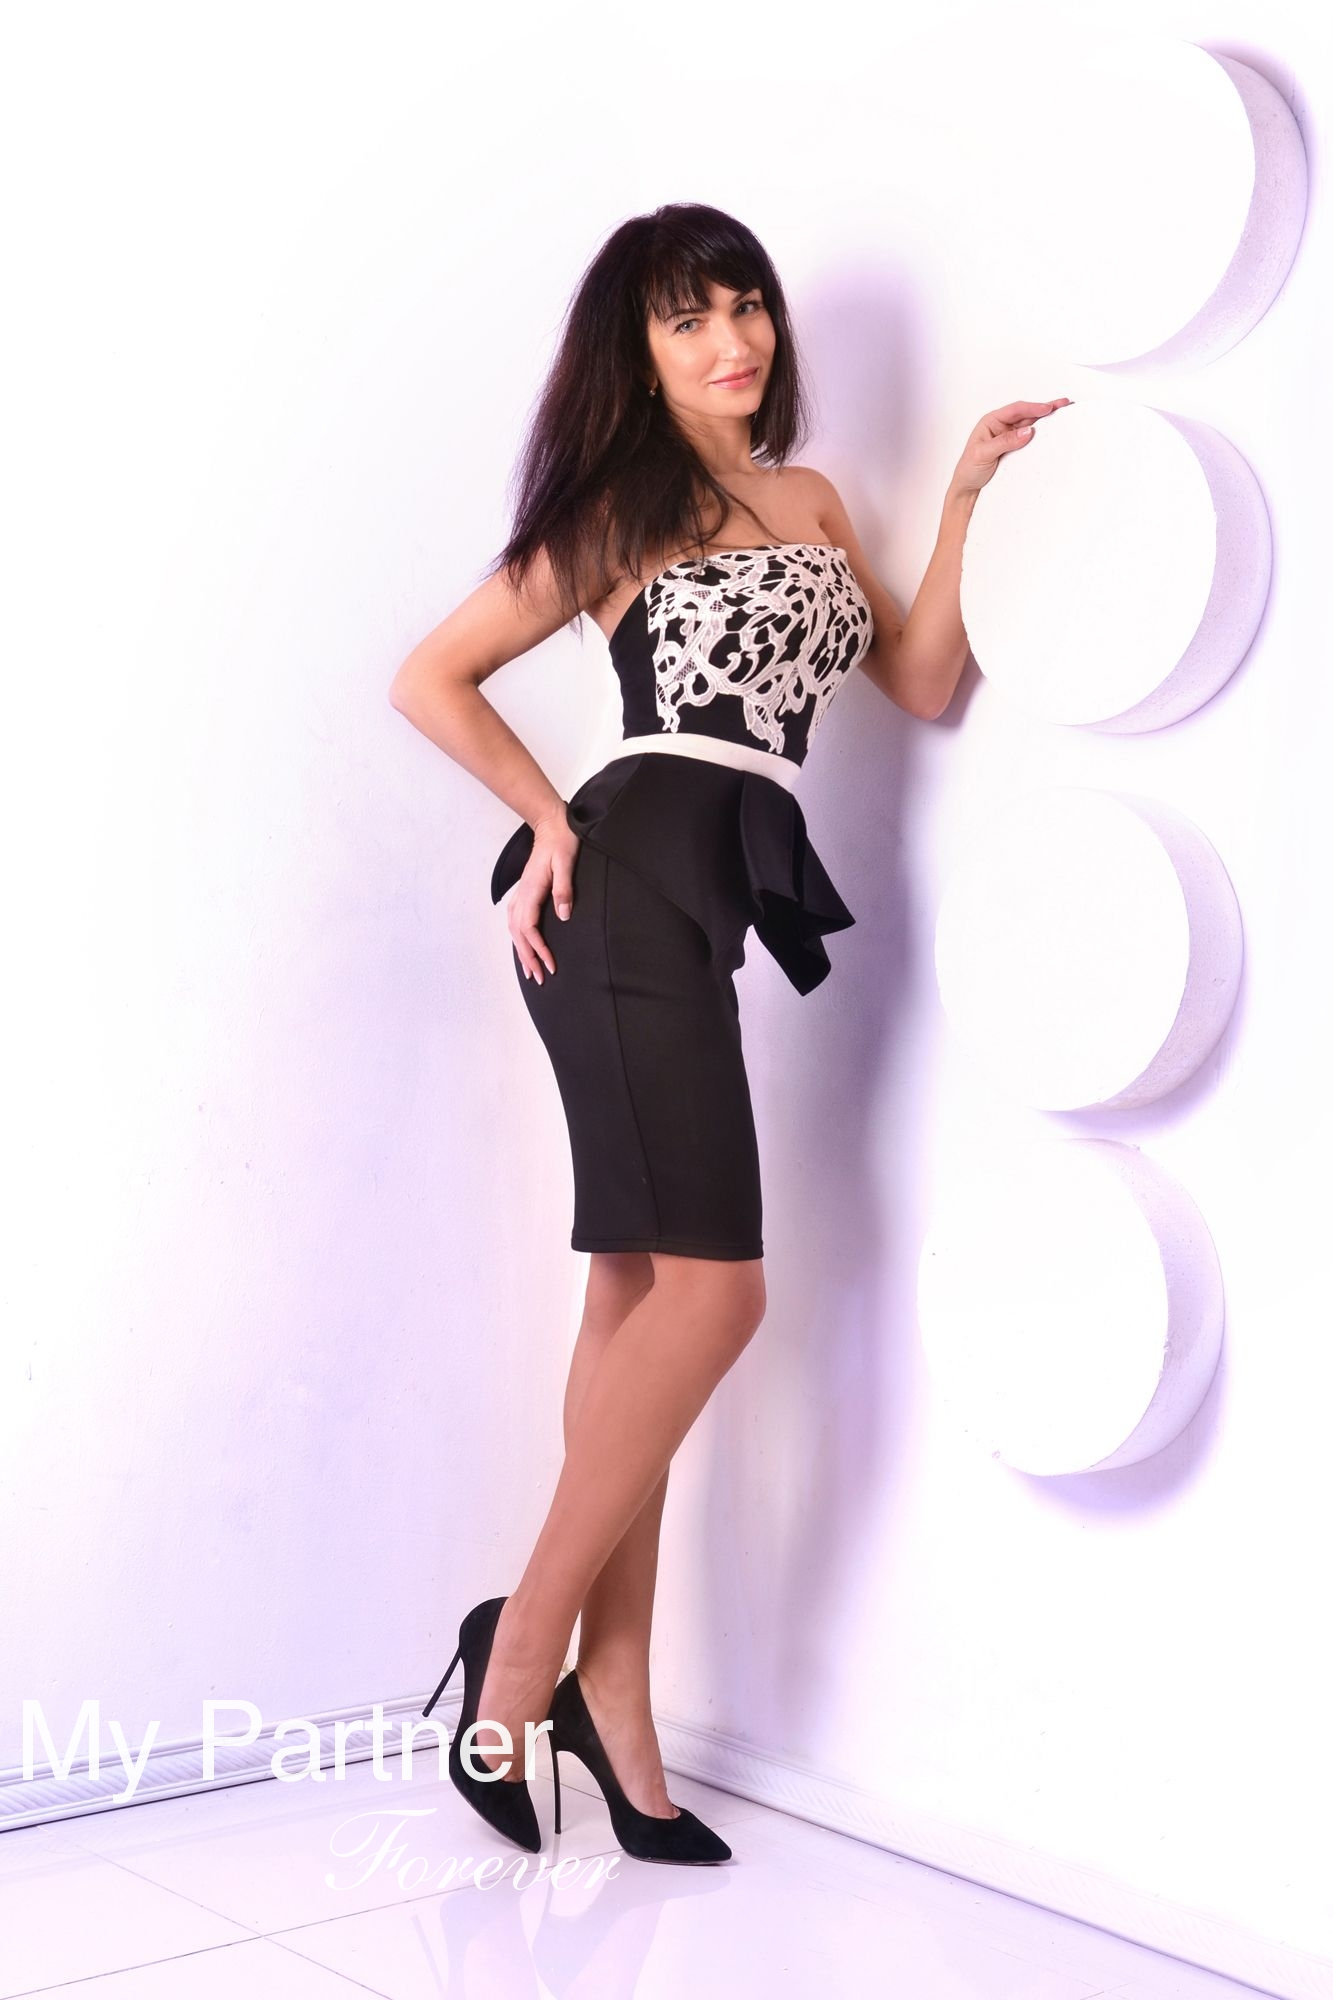 Meet Beautiful Ukrainian Woman Nataliya from Kharkov, Ukraine